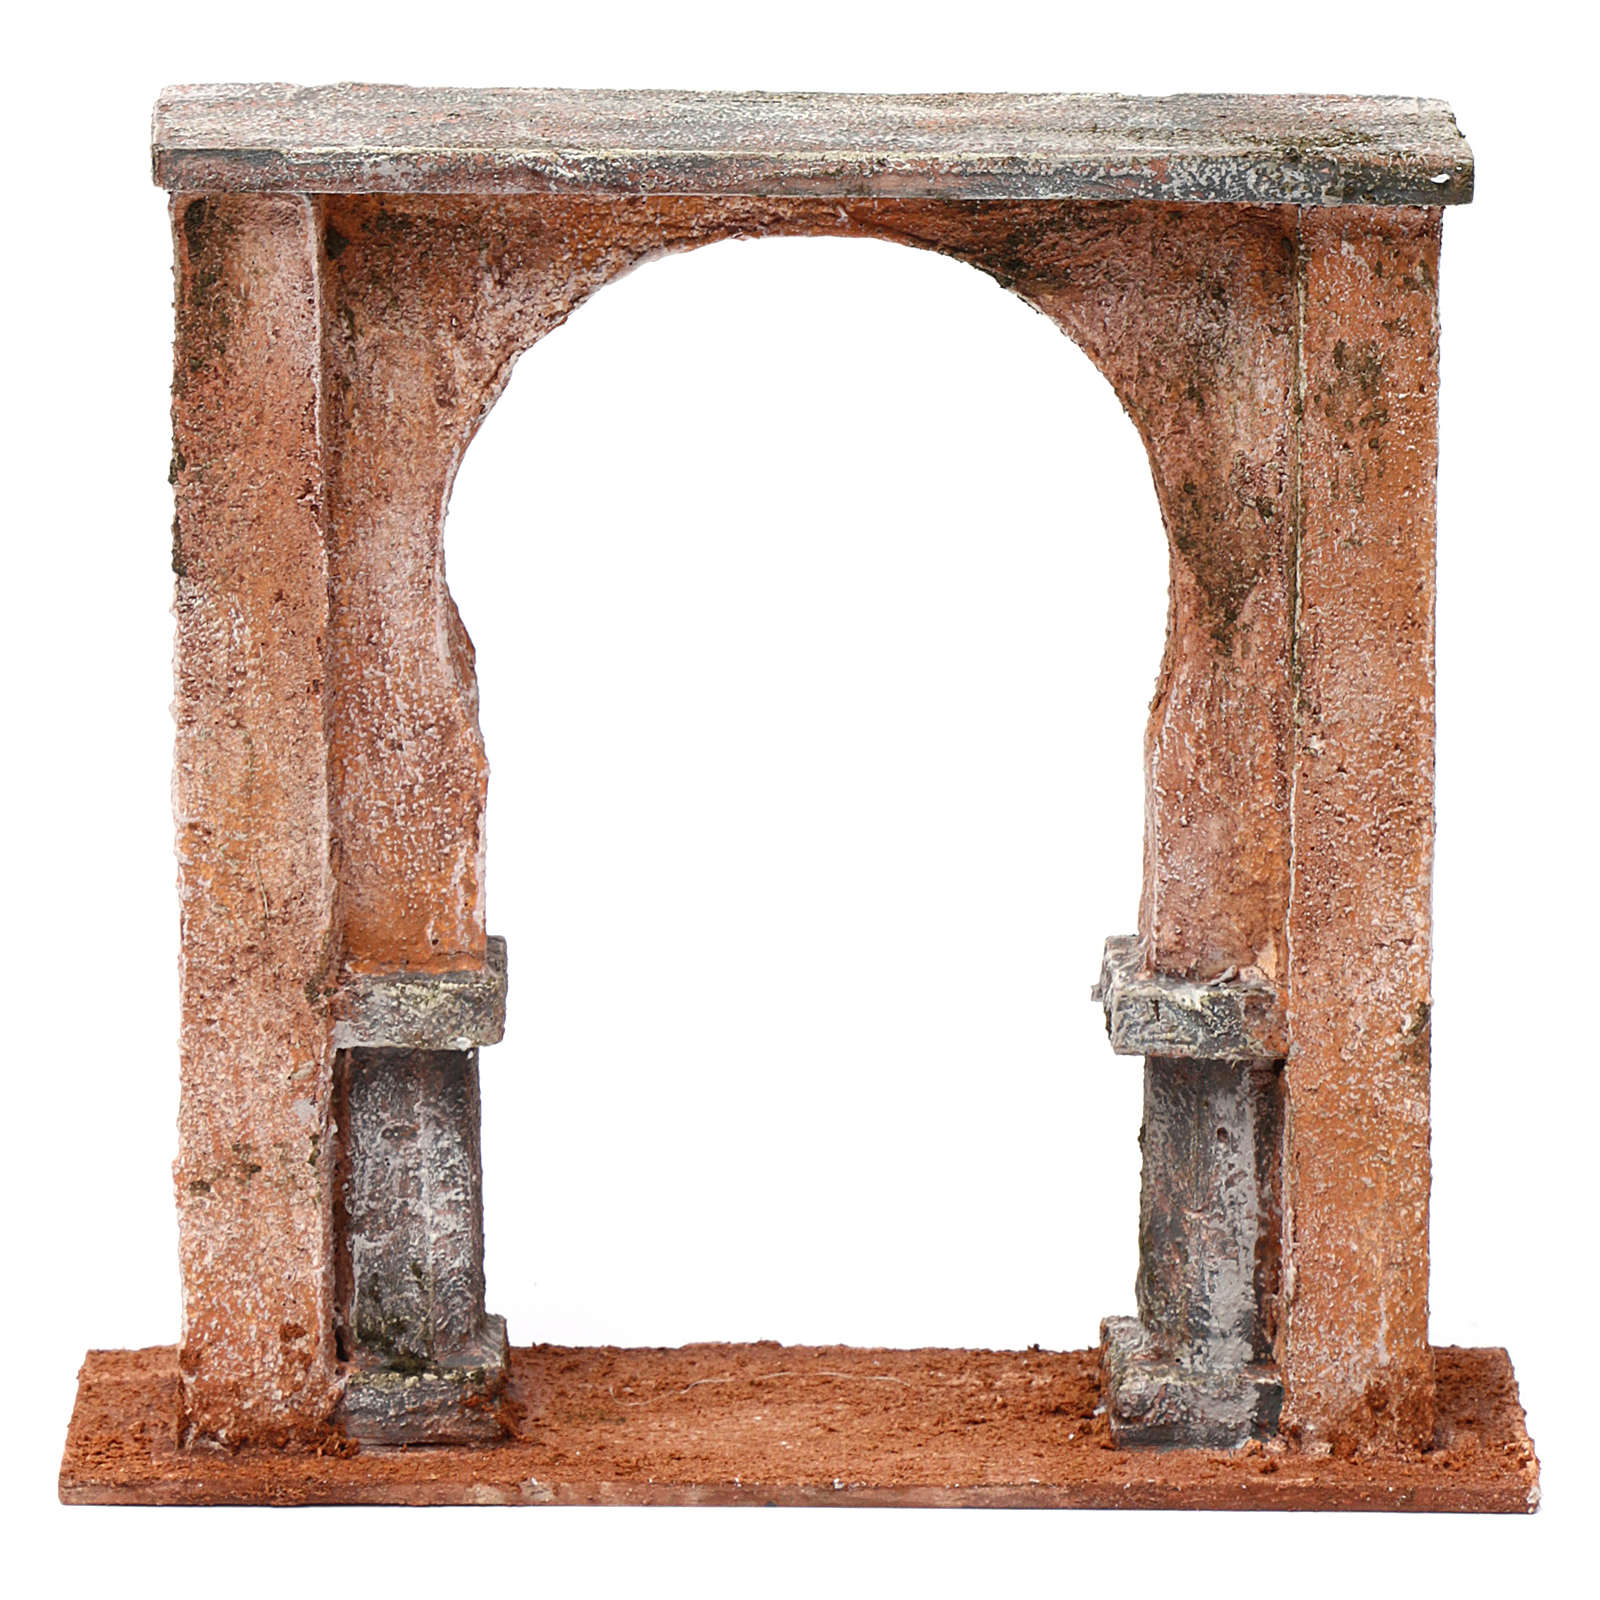 Arched Window Wall for 12 cm Nativity 2020X5 cm Palestinian style 4